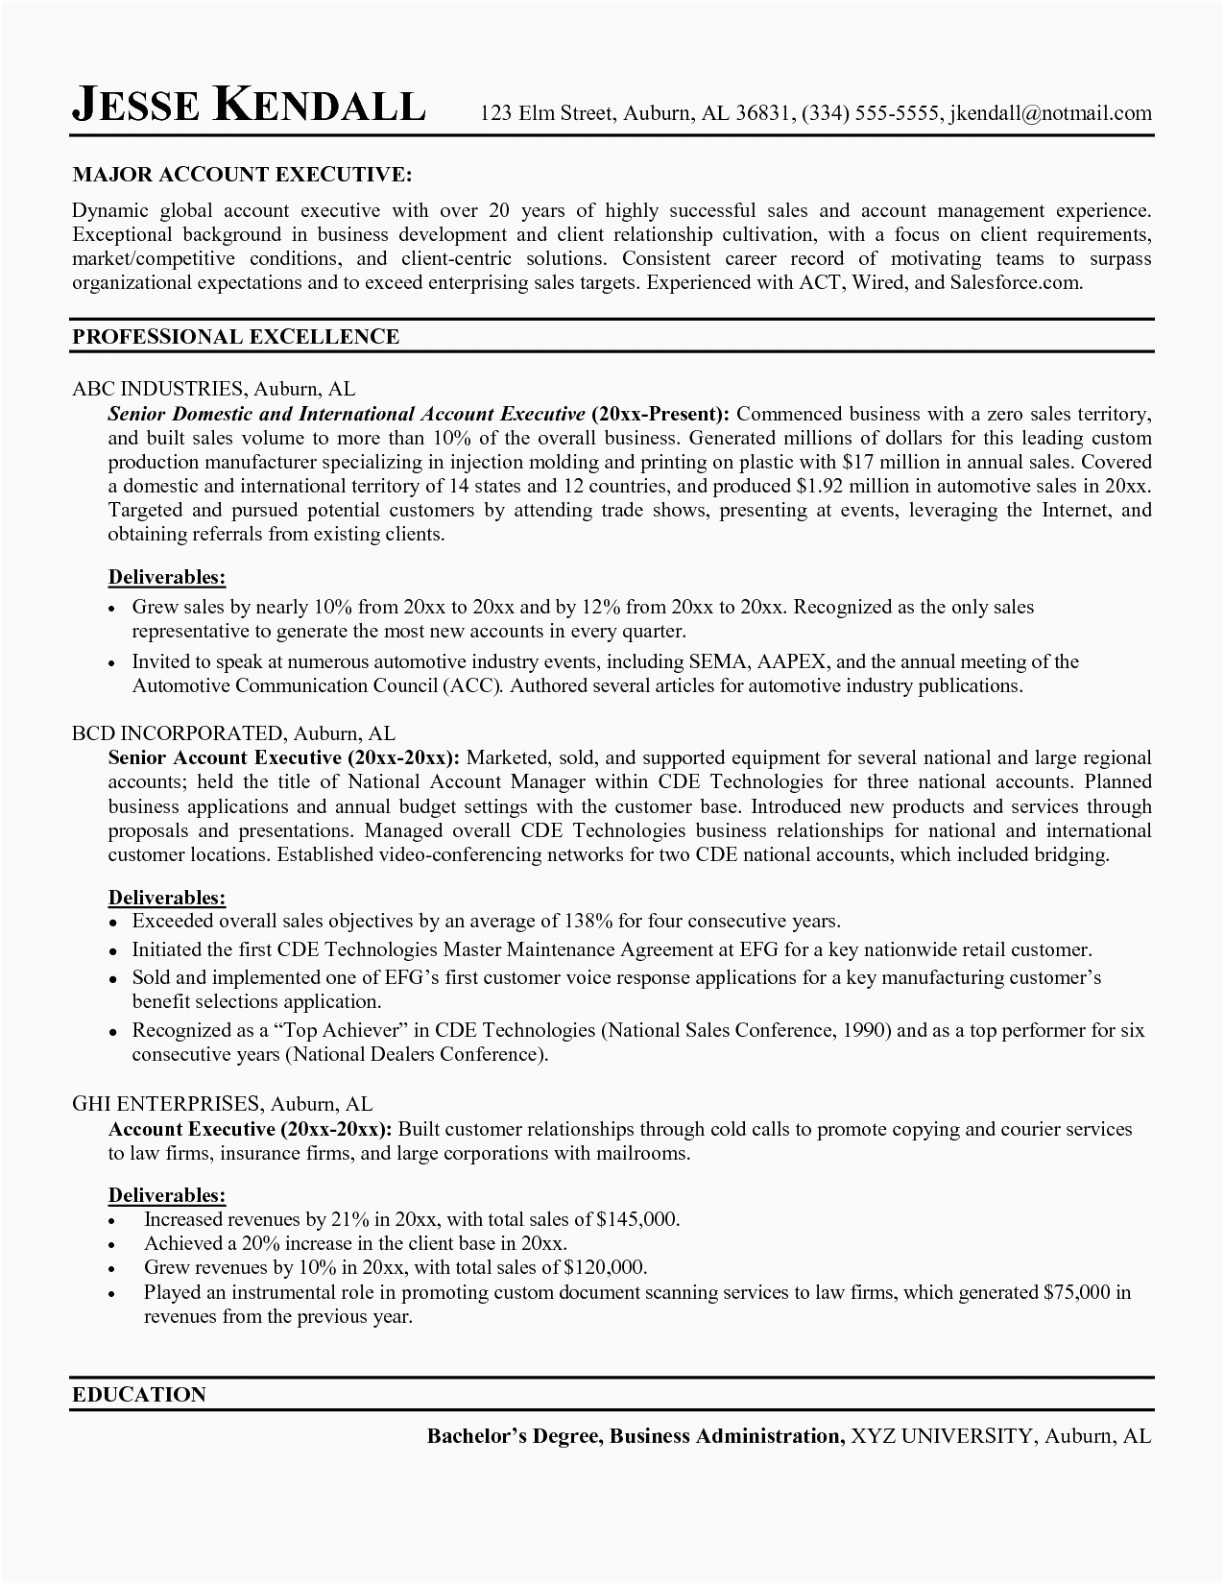 Business Development Resume Sample - Resume Sample Sales Representative Picture Resume for Sales Manager